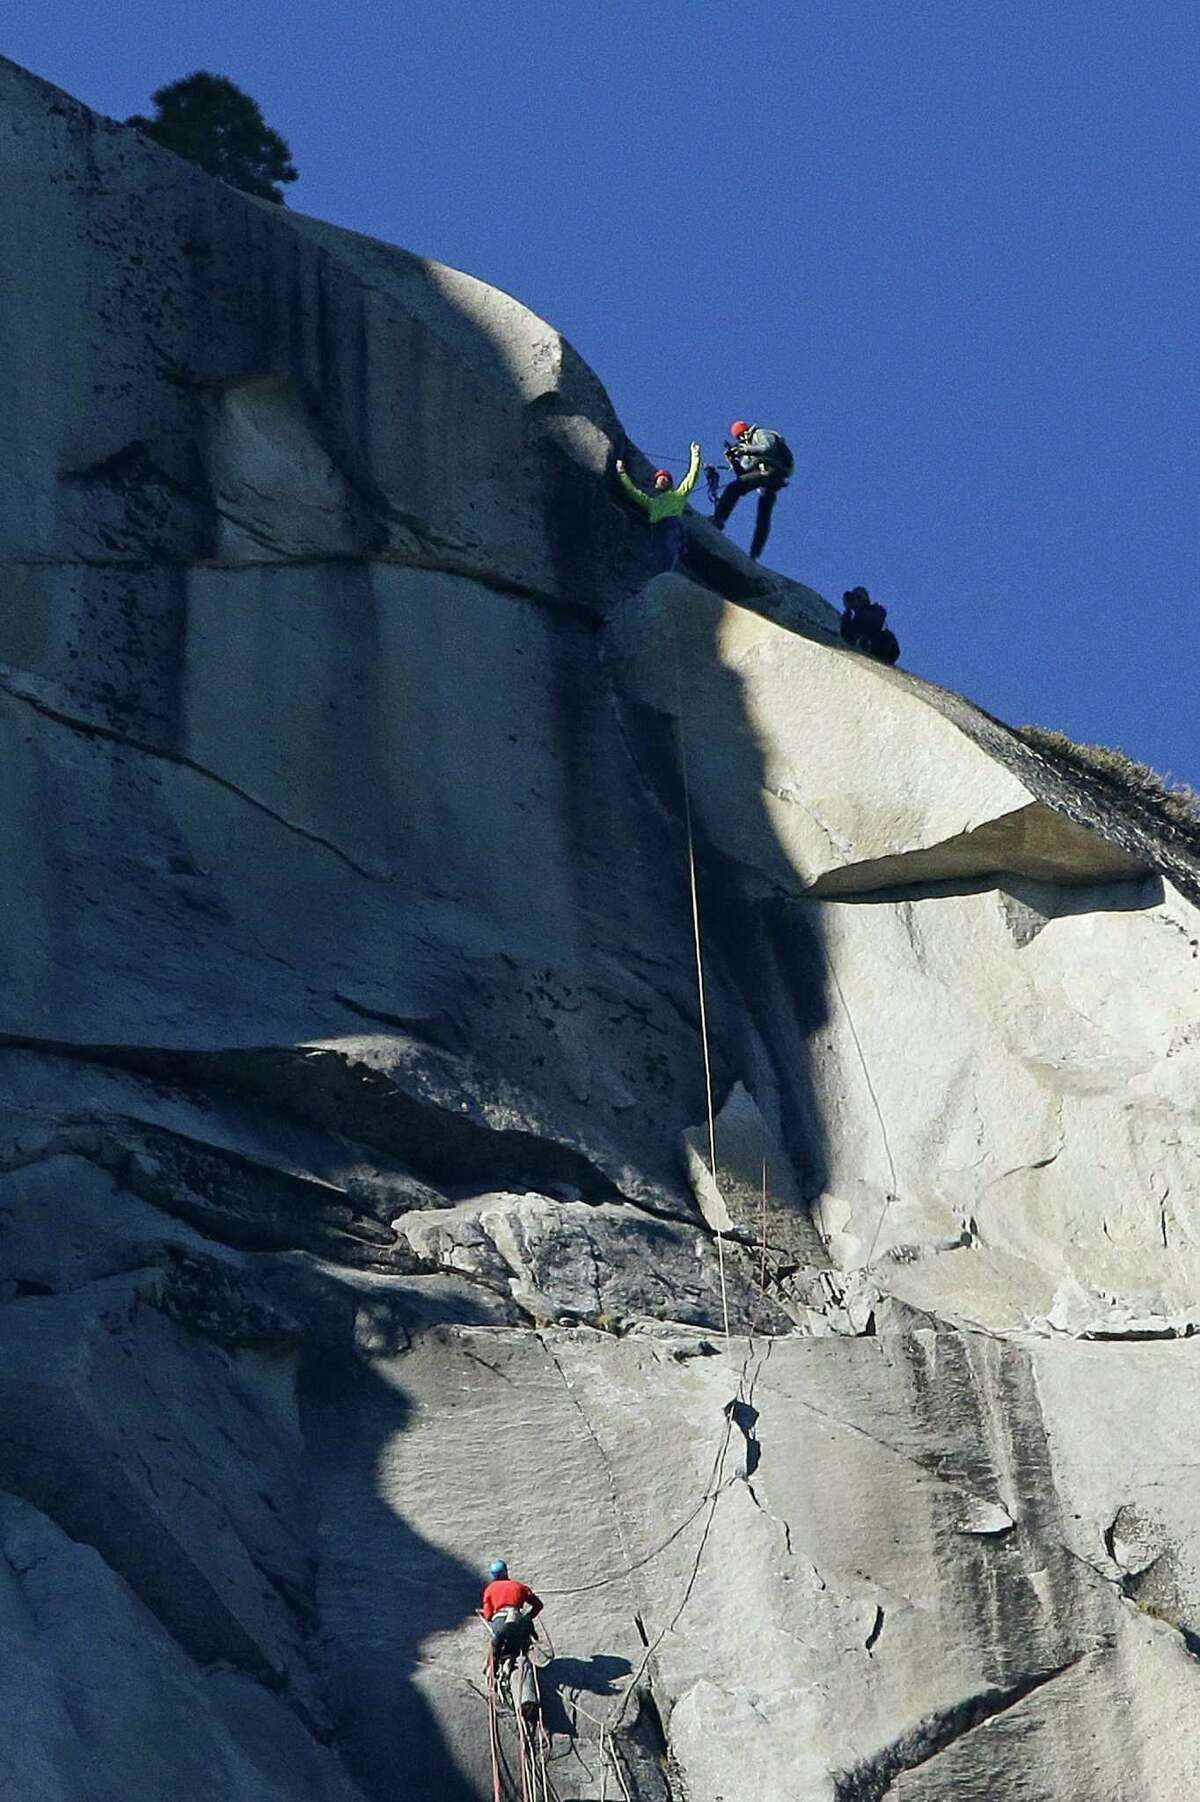 Tommy Caldwell, top, raises his arms after reaching the summit of El Capitan as Kevin Jorgeson, bottom, watches Wednesday, Jan. 14, 2015, as seen from the valley floor in Yosemite National Park, Calif. Caldwell and Jorgeson became the first to free-climb the rock formation's Dawn Wall. They used ropes and safety harnesses to catch them in case of a fall, but relied entirely on their own strength and dexterity to ascend by grasping cracks as thin as razor blades and as small as dimes.